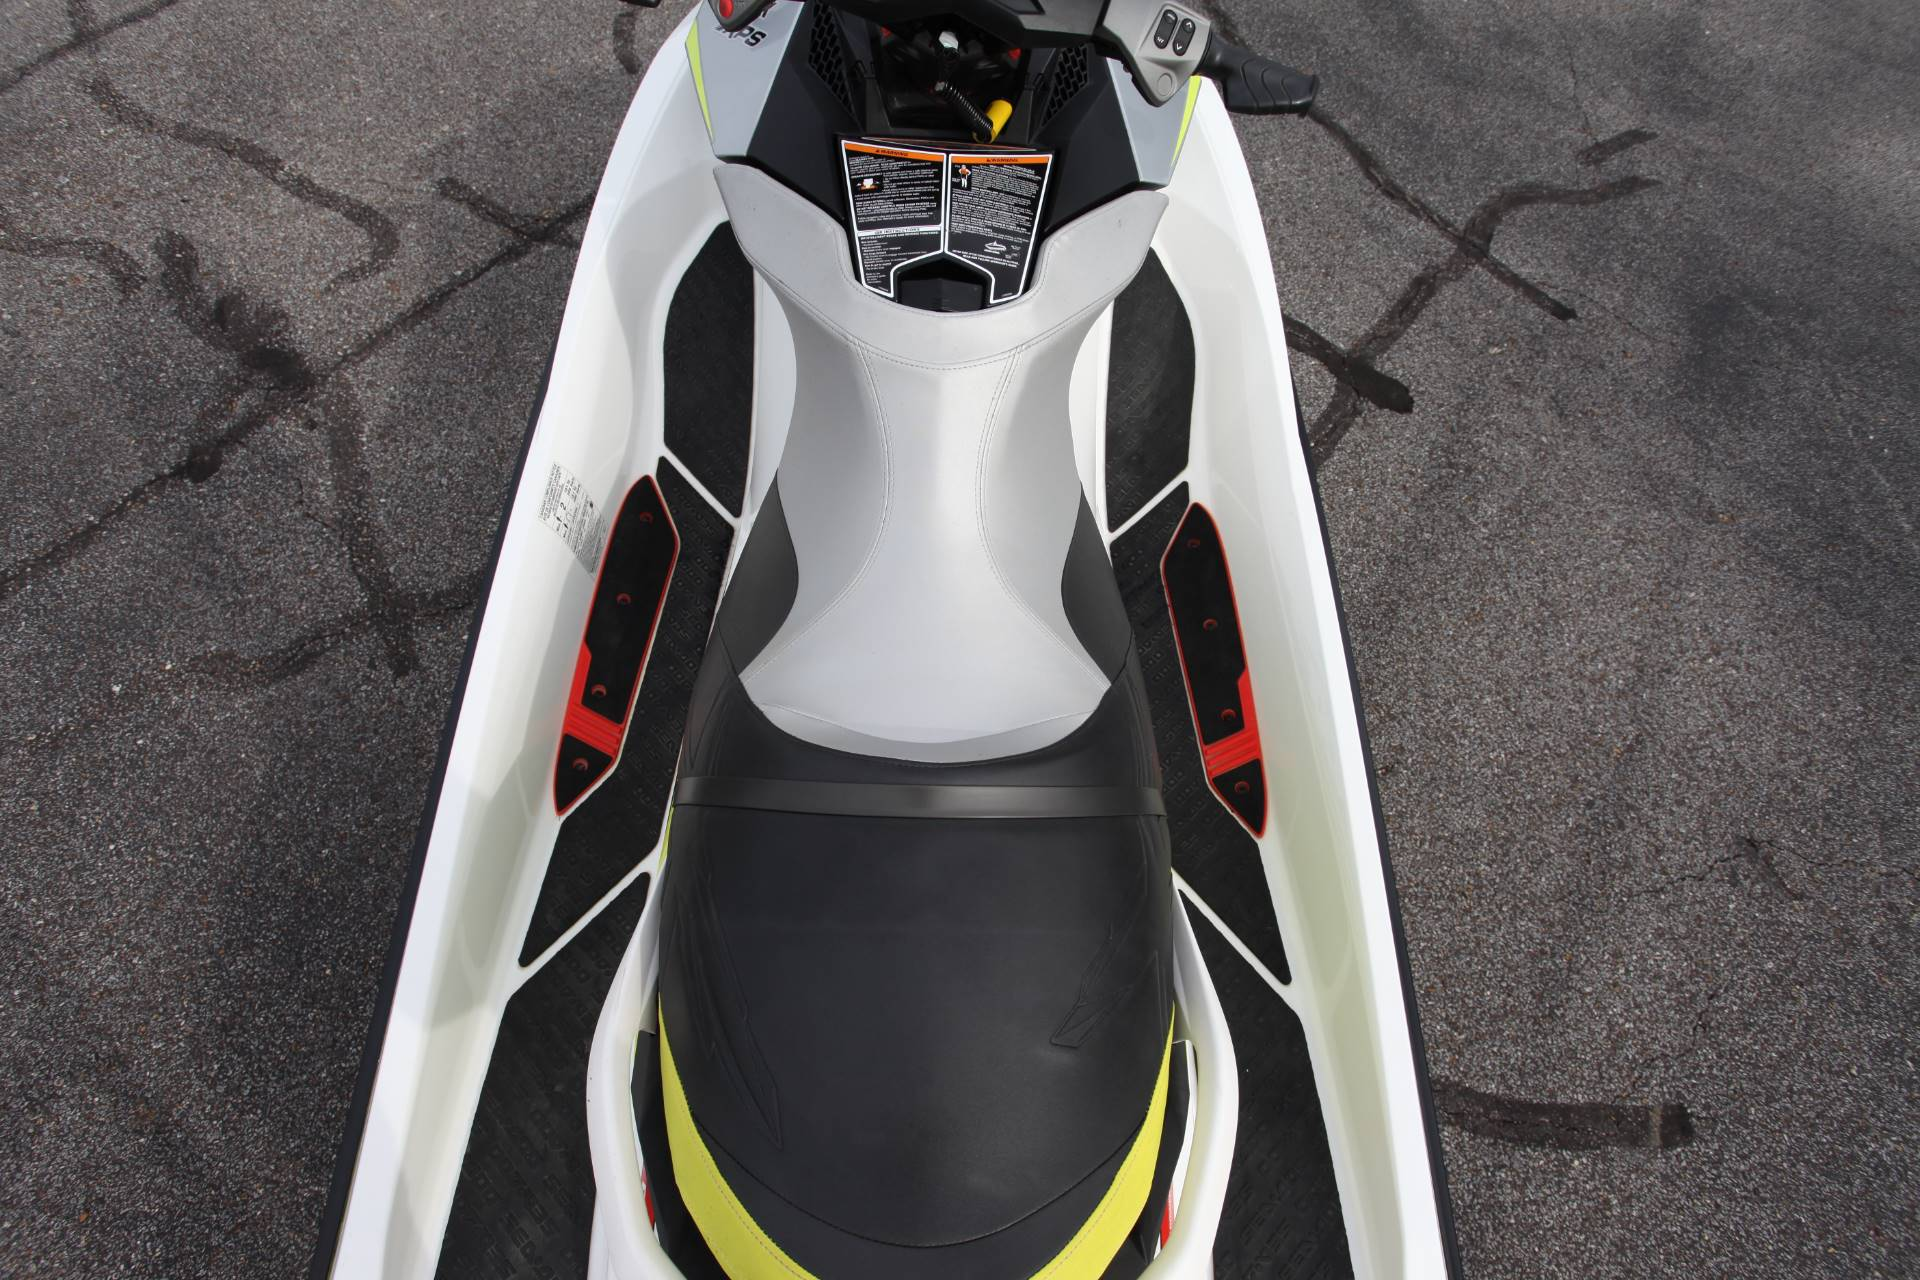 2017 Sea-Doo RXP-X 300 in Memphis, Tennessee - Photo 11